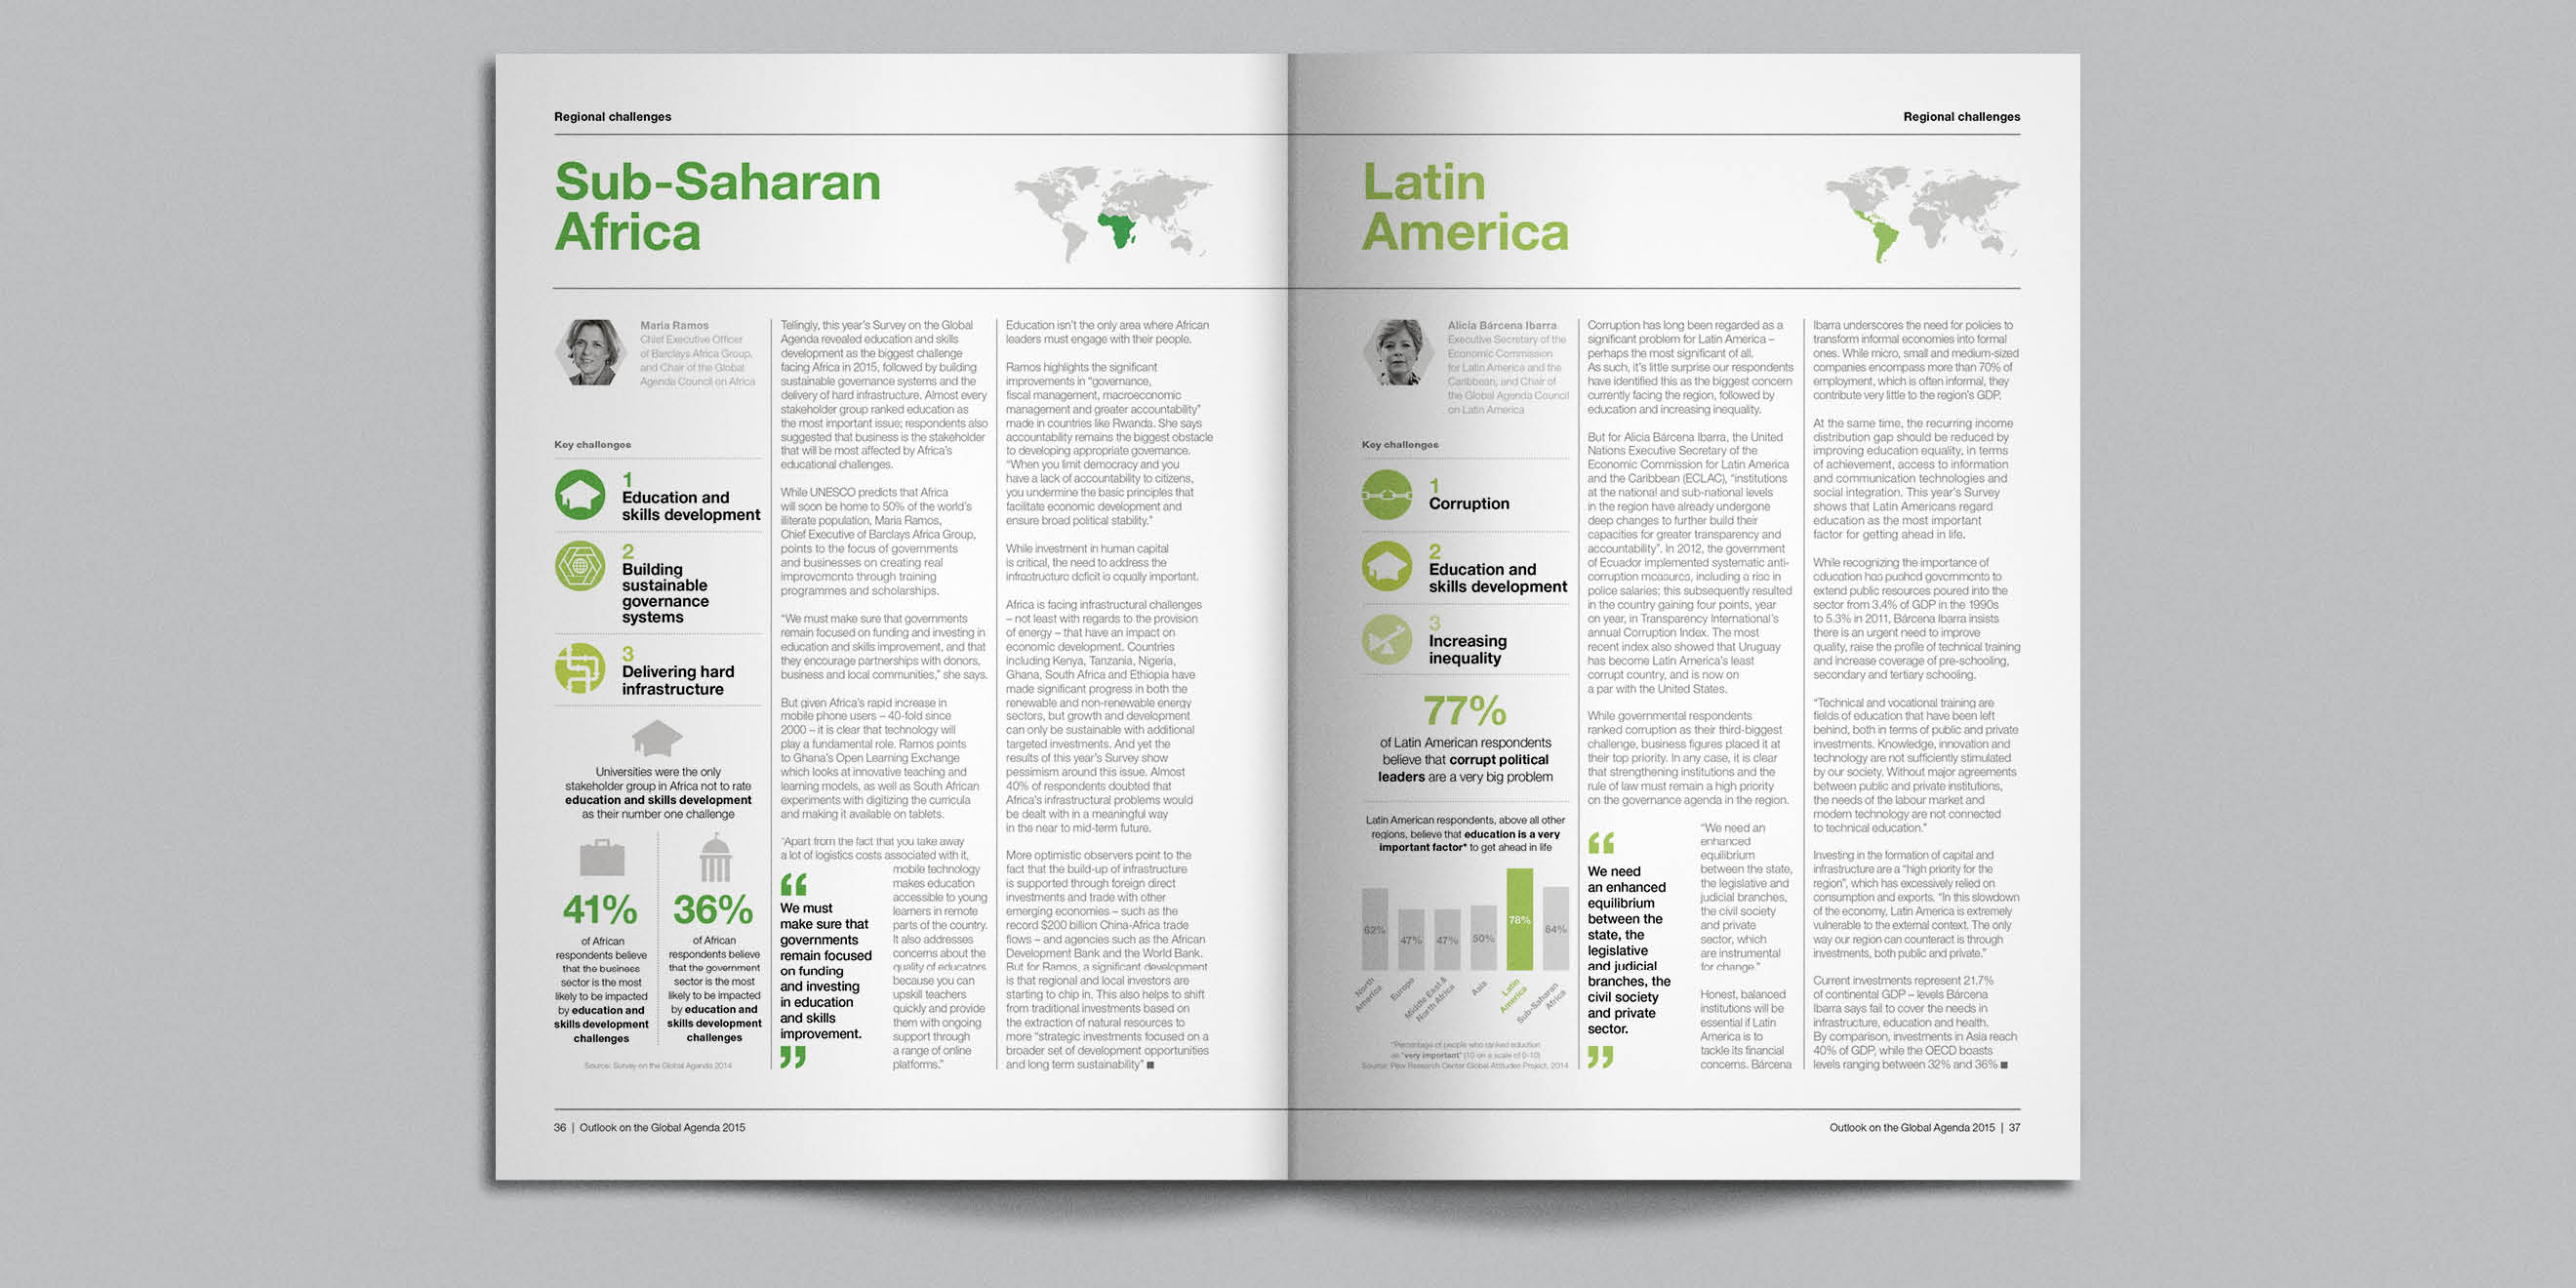 Page design from WEF: Outlook on the Global Agenda 2015 by Human After All